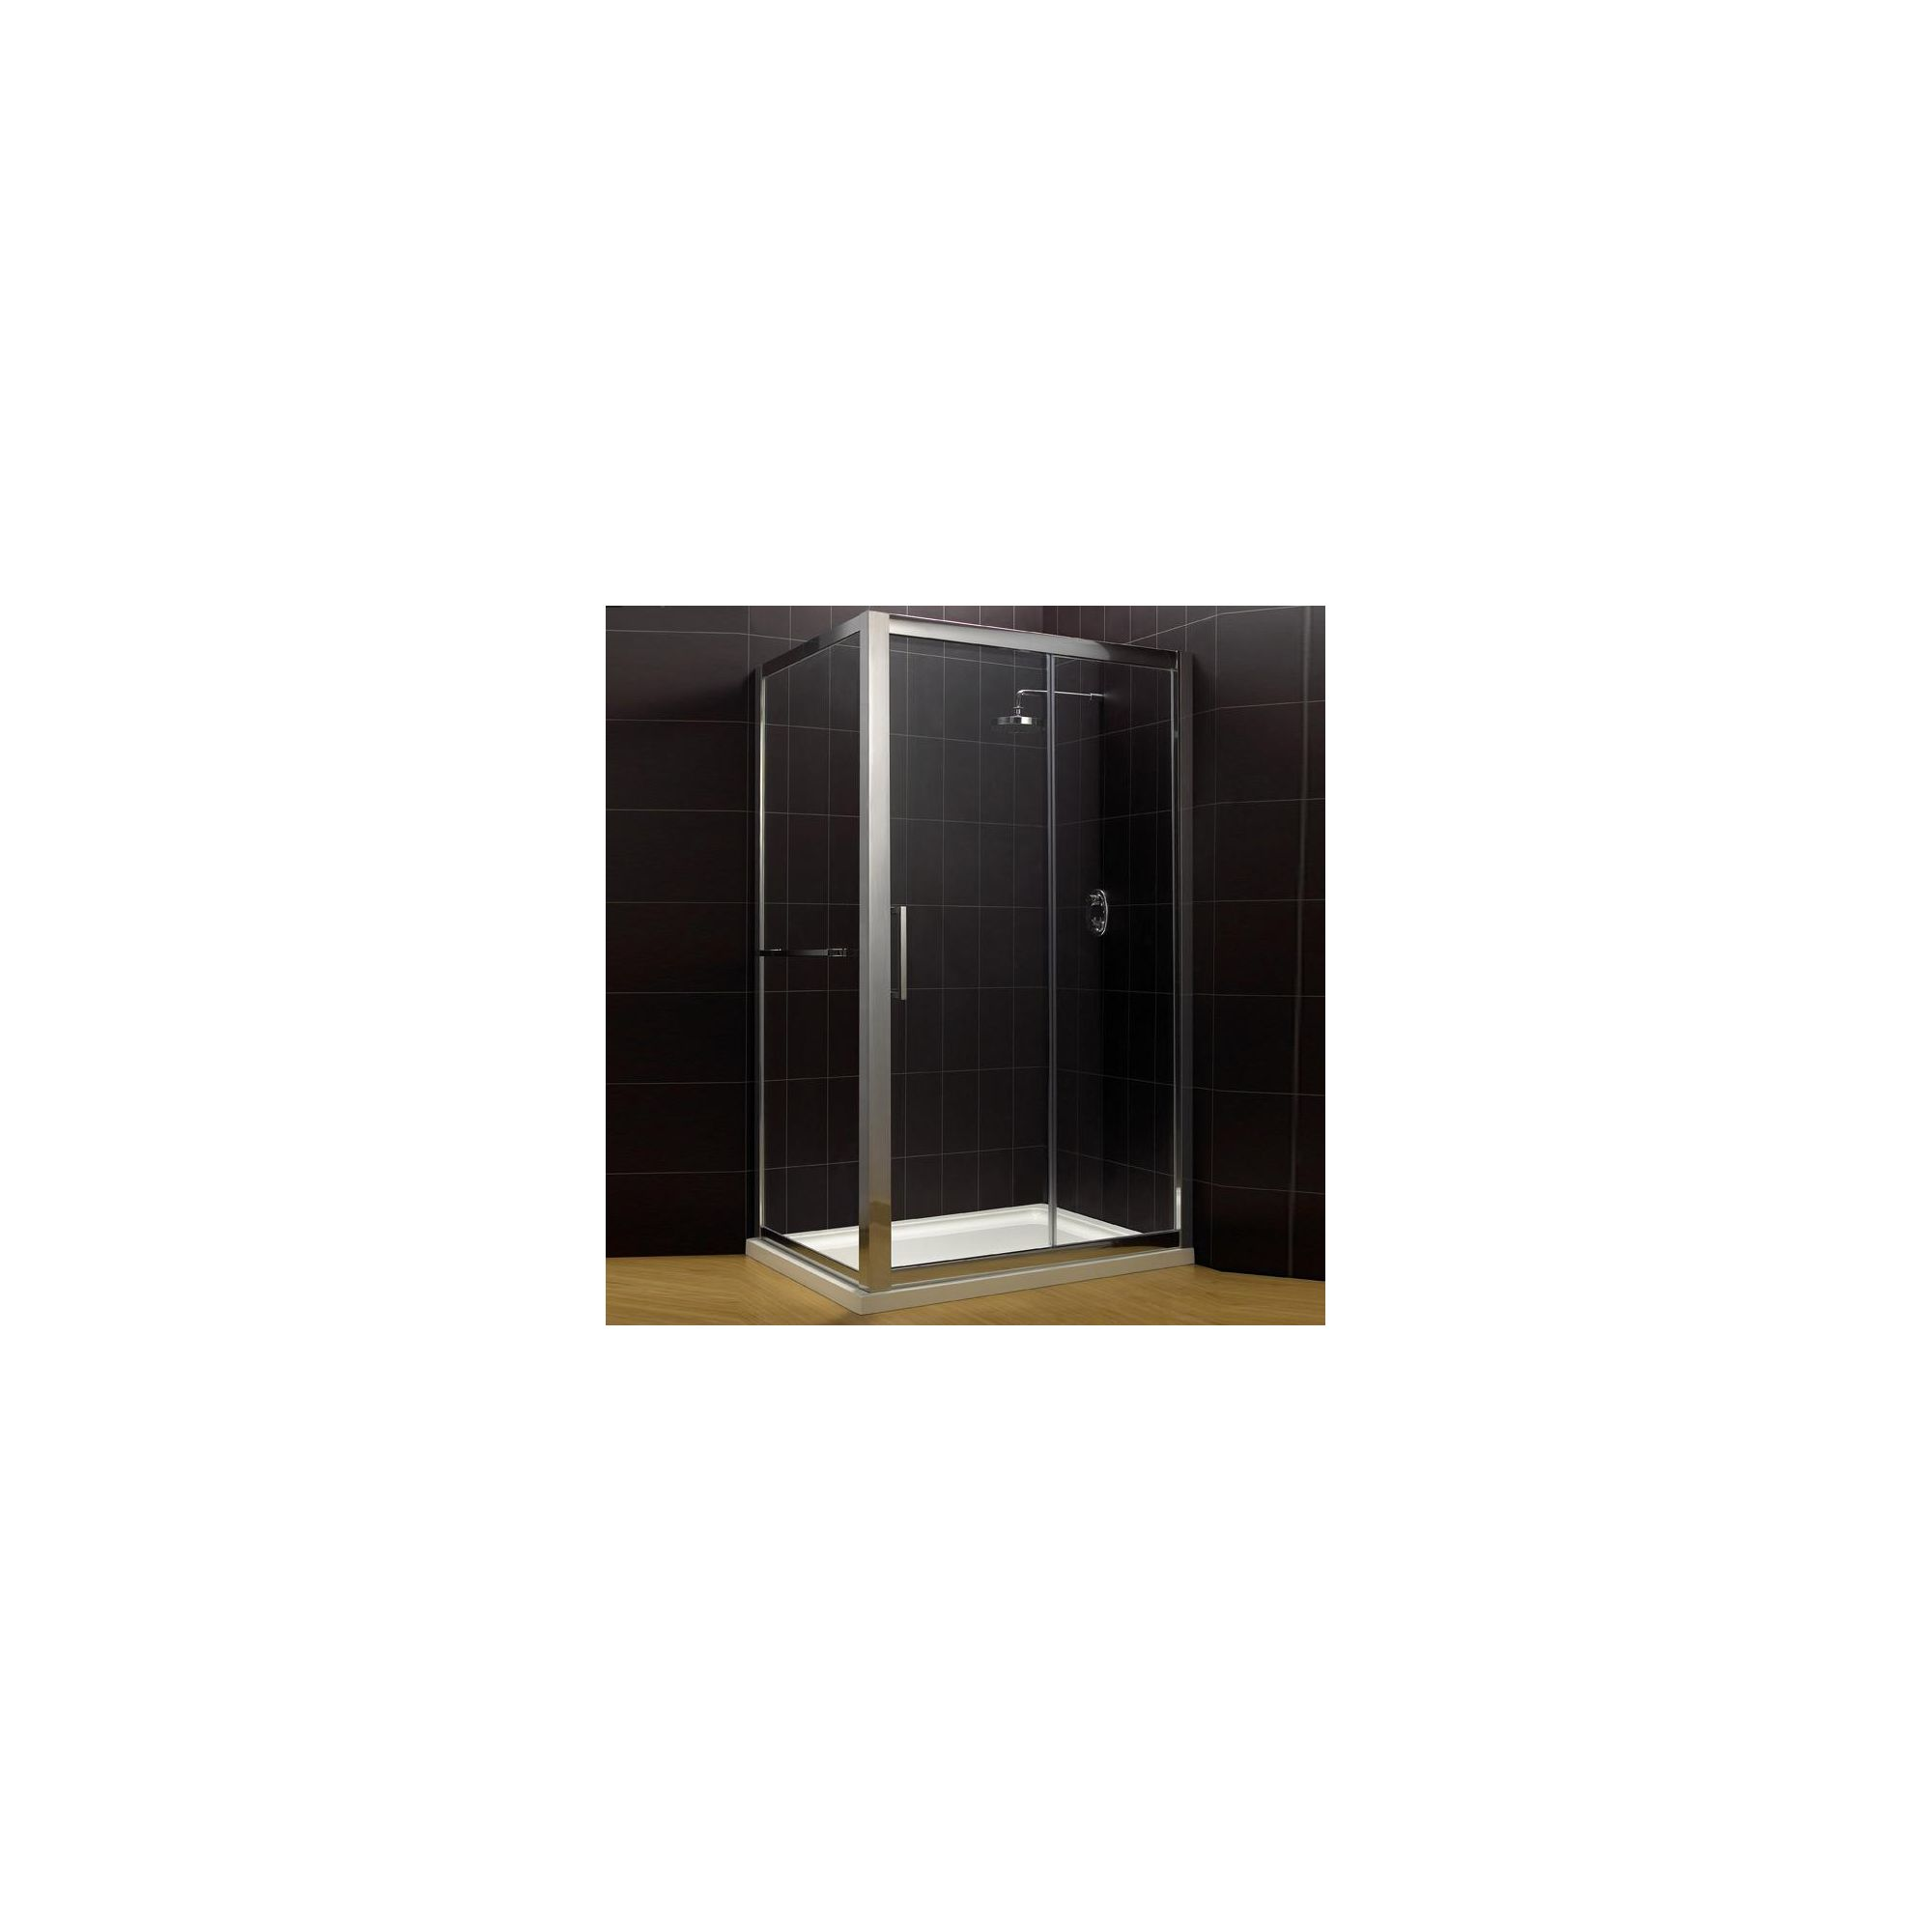 Duchy Supreme Silver Sliding Door Shower Enclosure, 1700mm x 800mm, Standard Tray, 8mm Glass at Tescos Direct